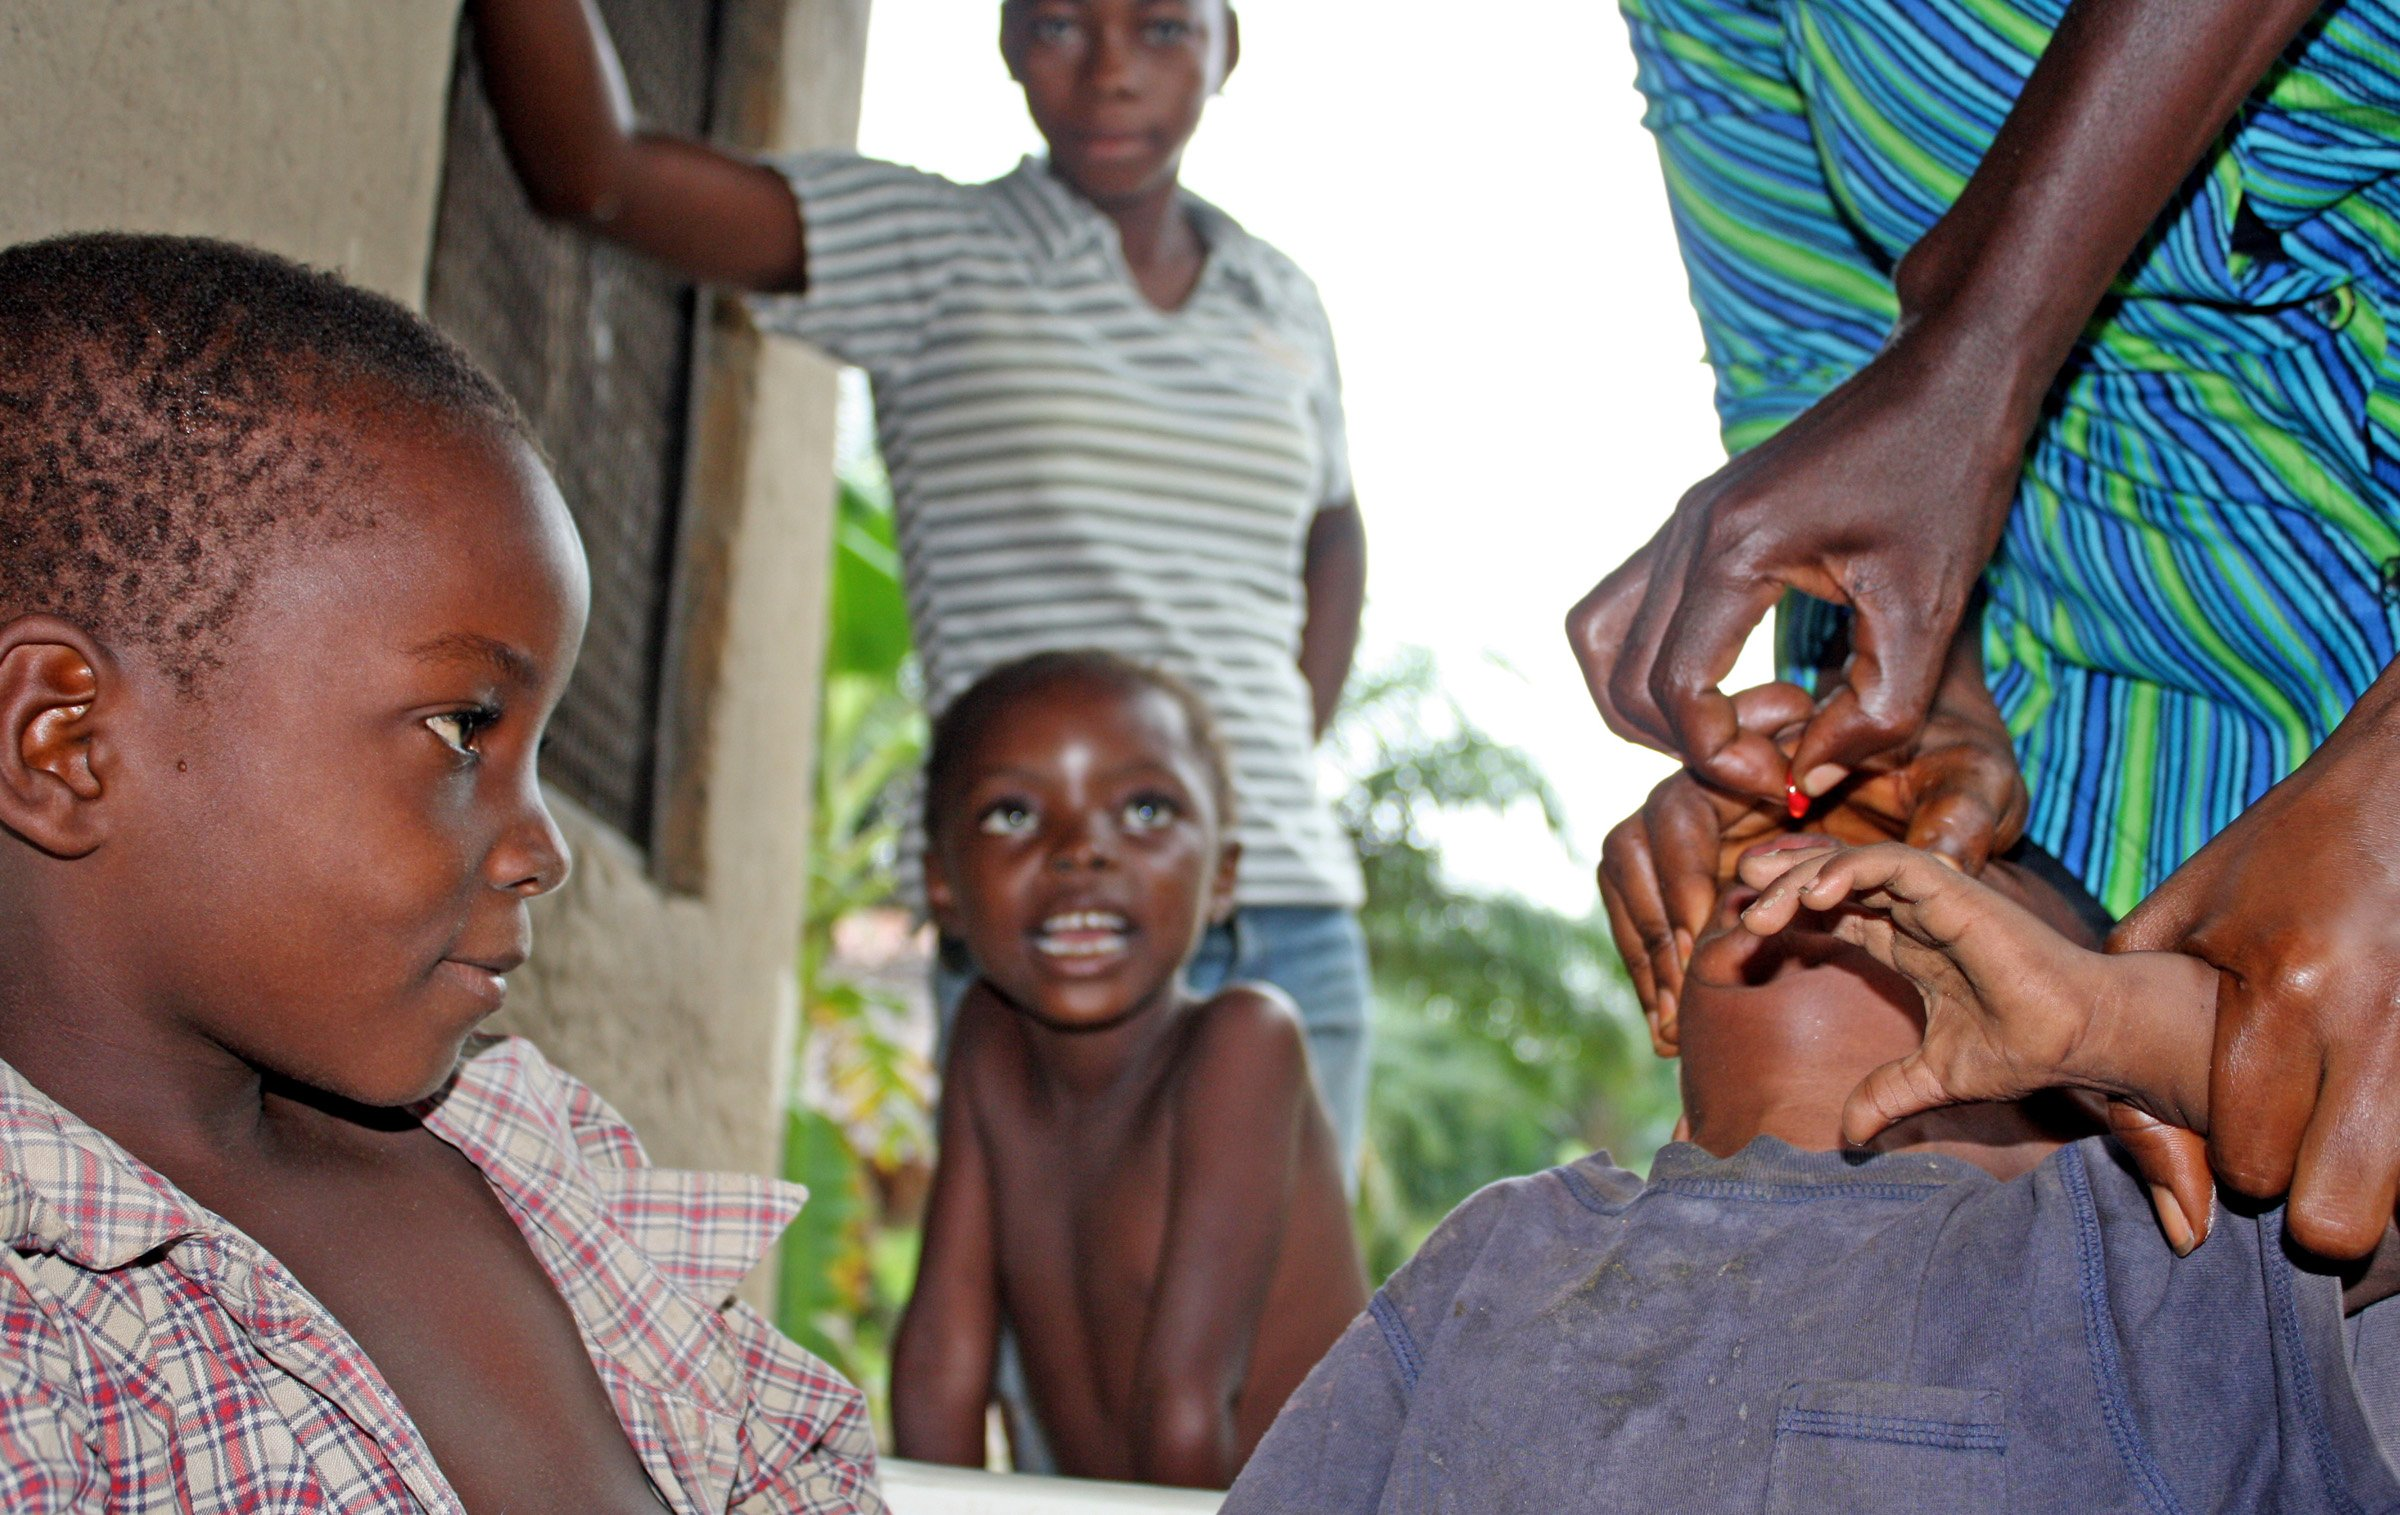 A child is immunized in Mbandaka, Equateur province of the Democratic Republic of Congo, on 21 October 2011. A three-day (20-23 October) vaccination campaign in the country targeted 14 million children aged under five years